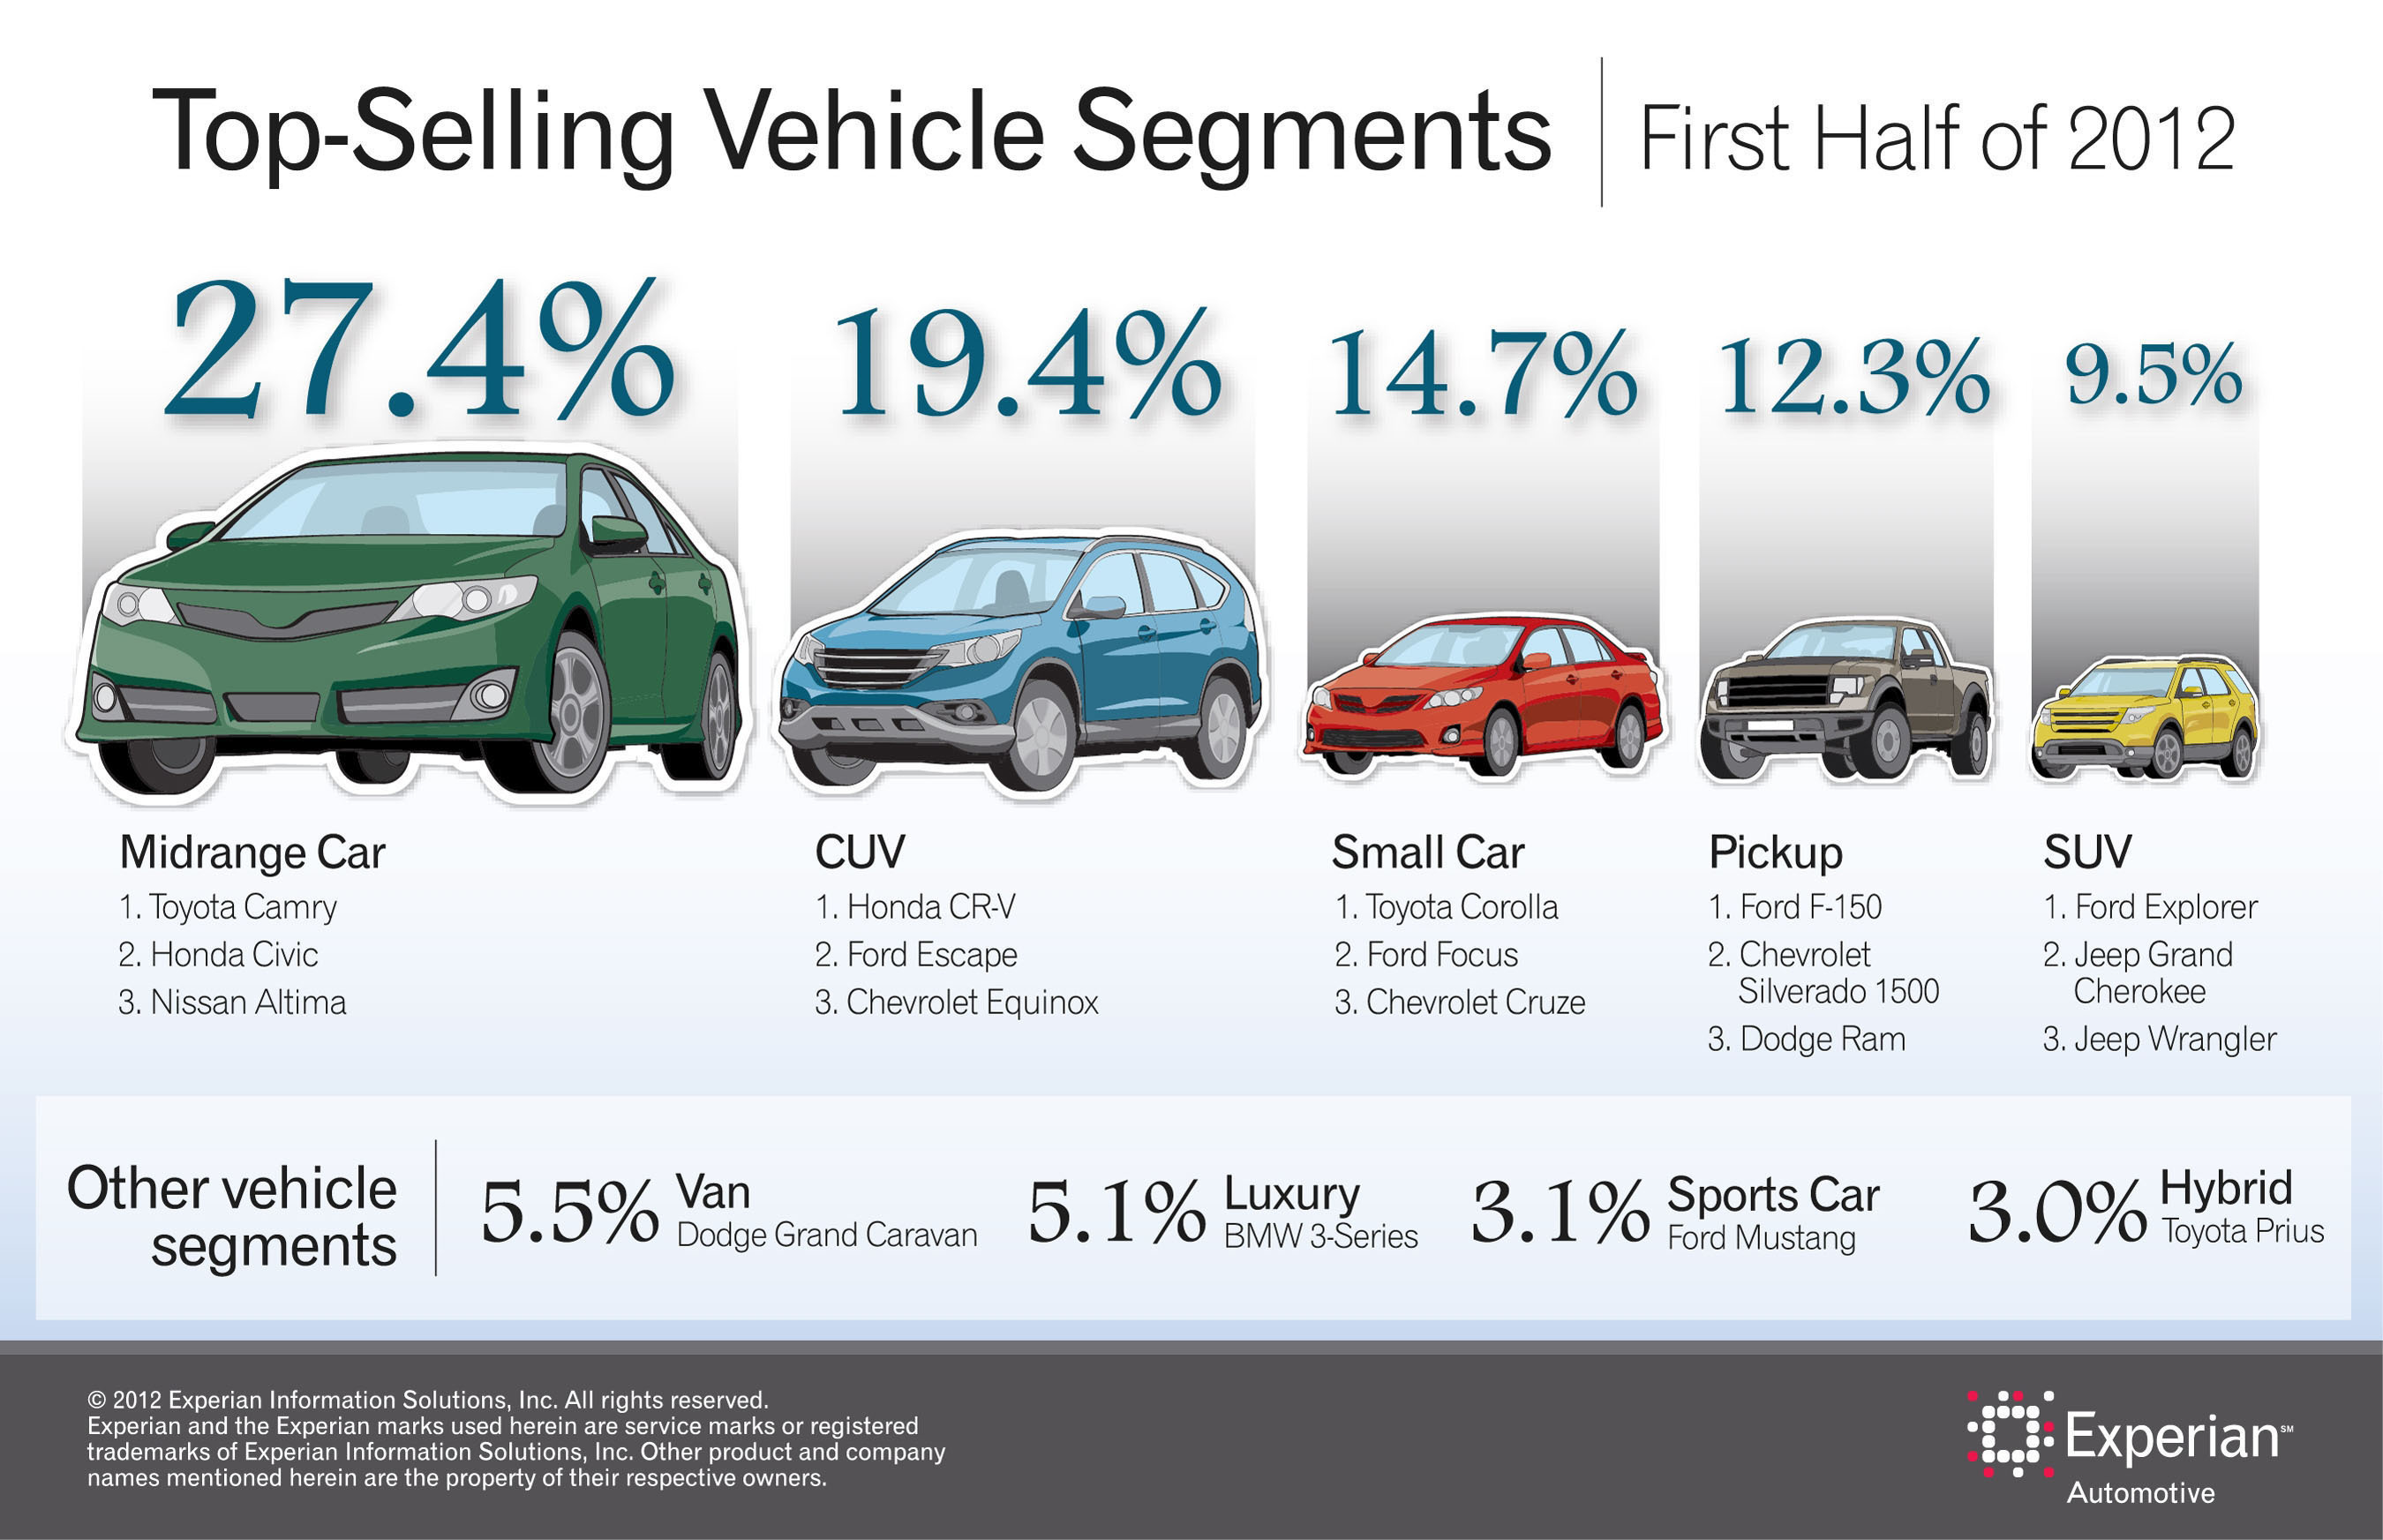 Experian Automotive: Midrange cars are top-selling segment; Toyota Camry top vehicle